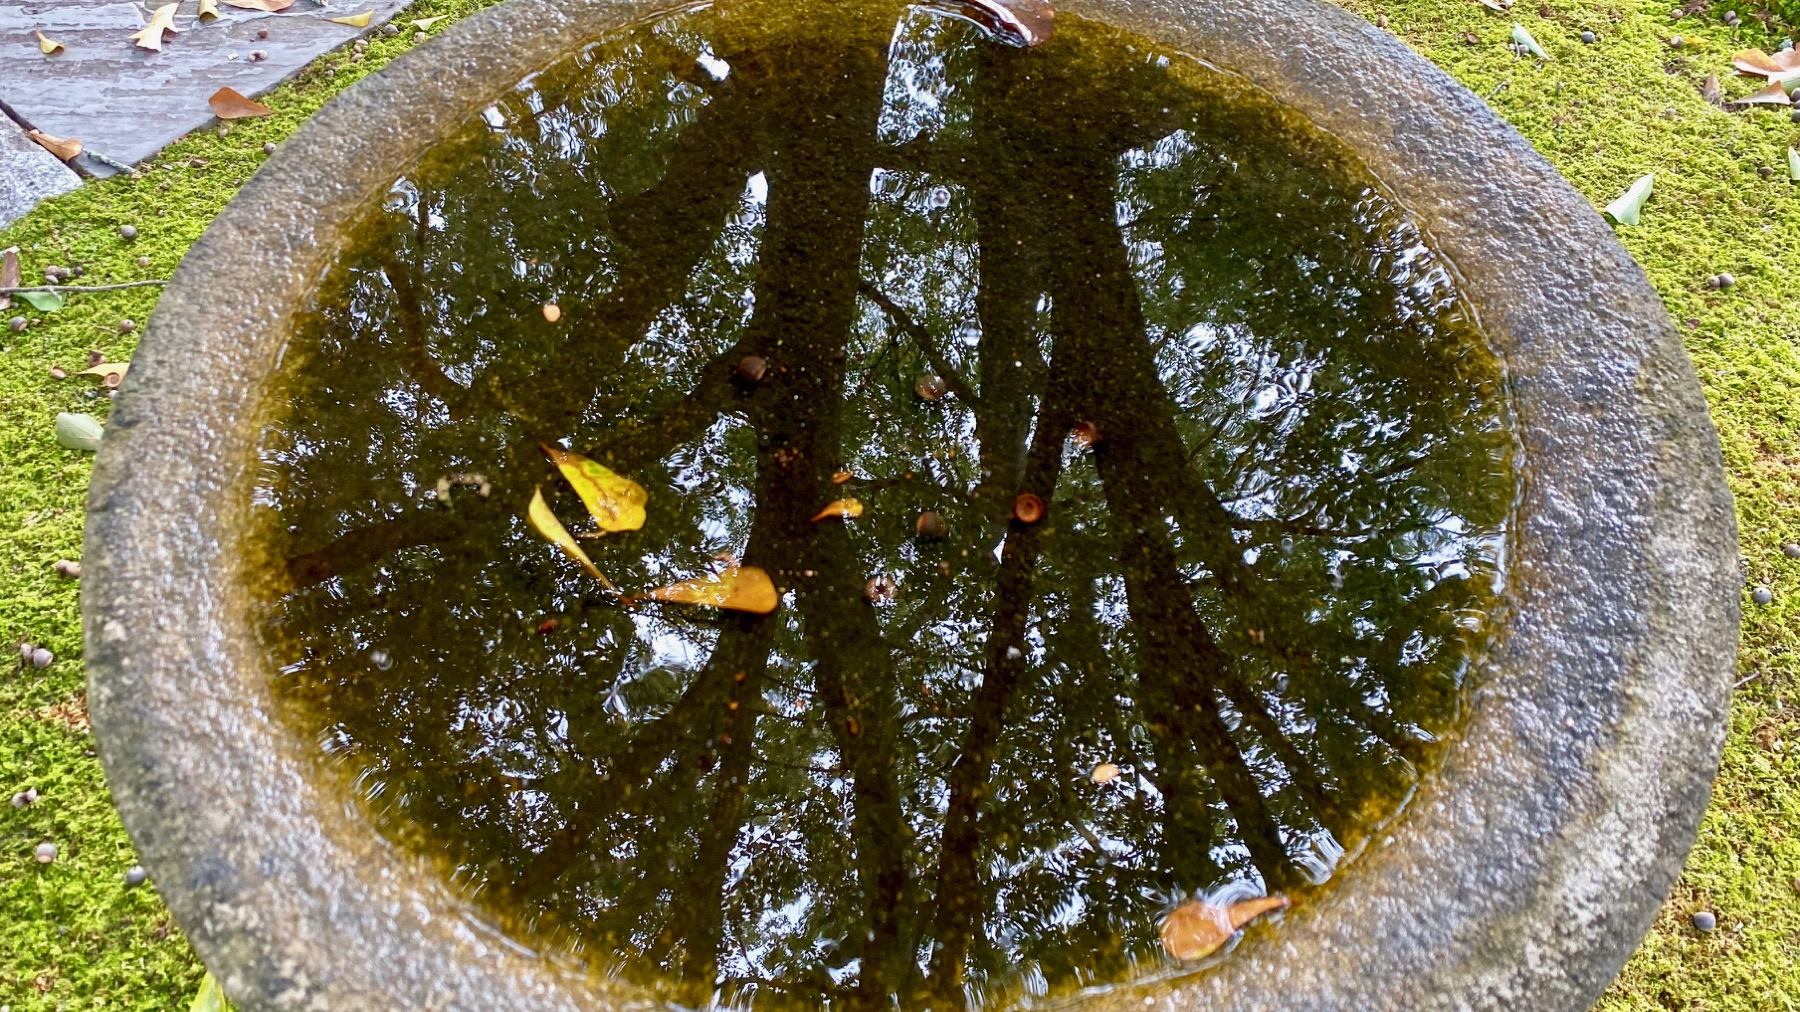 Birdbath reflection